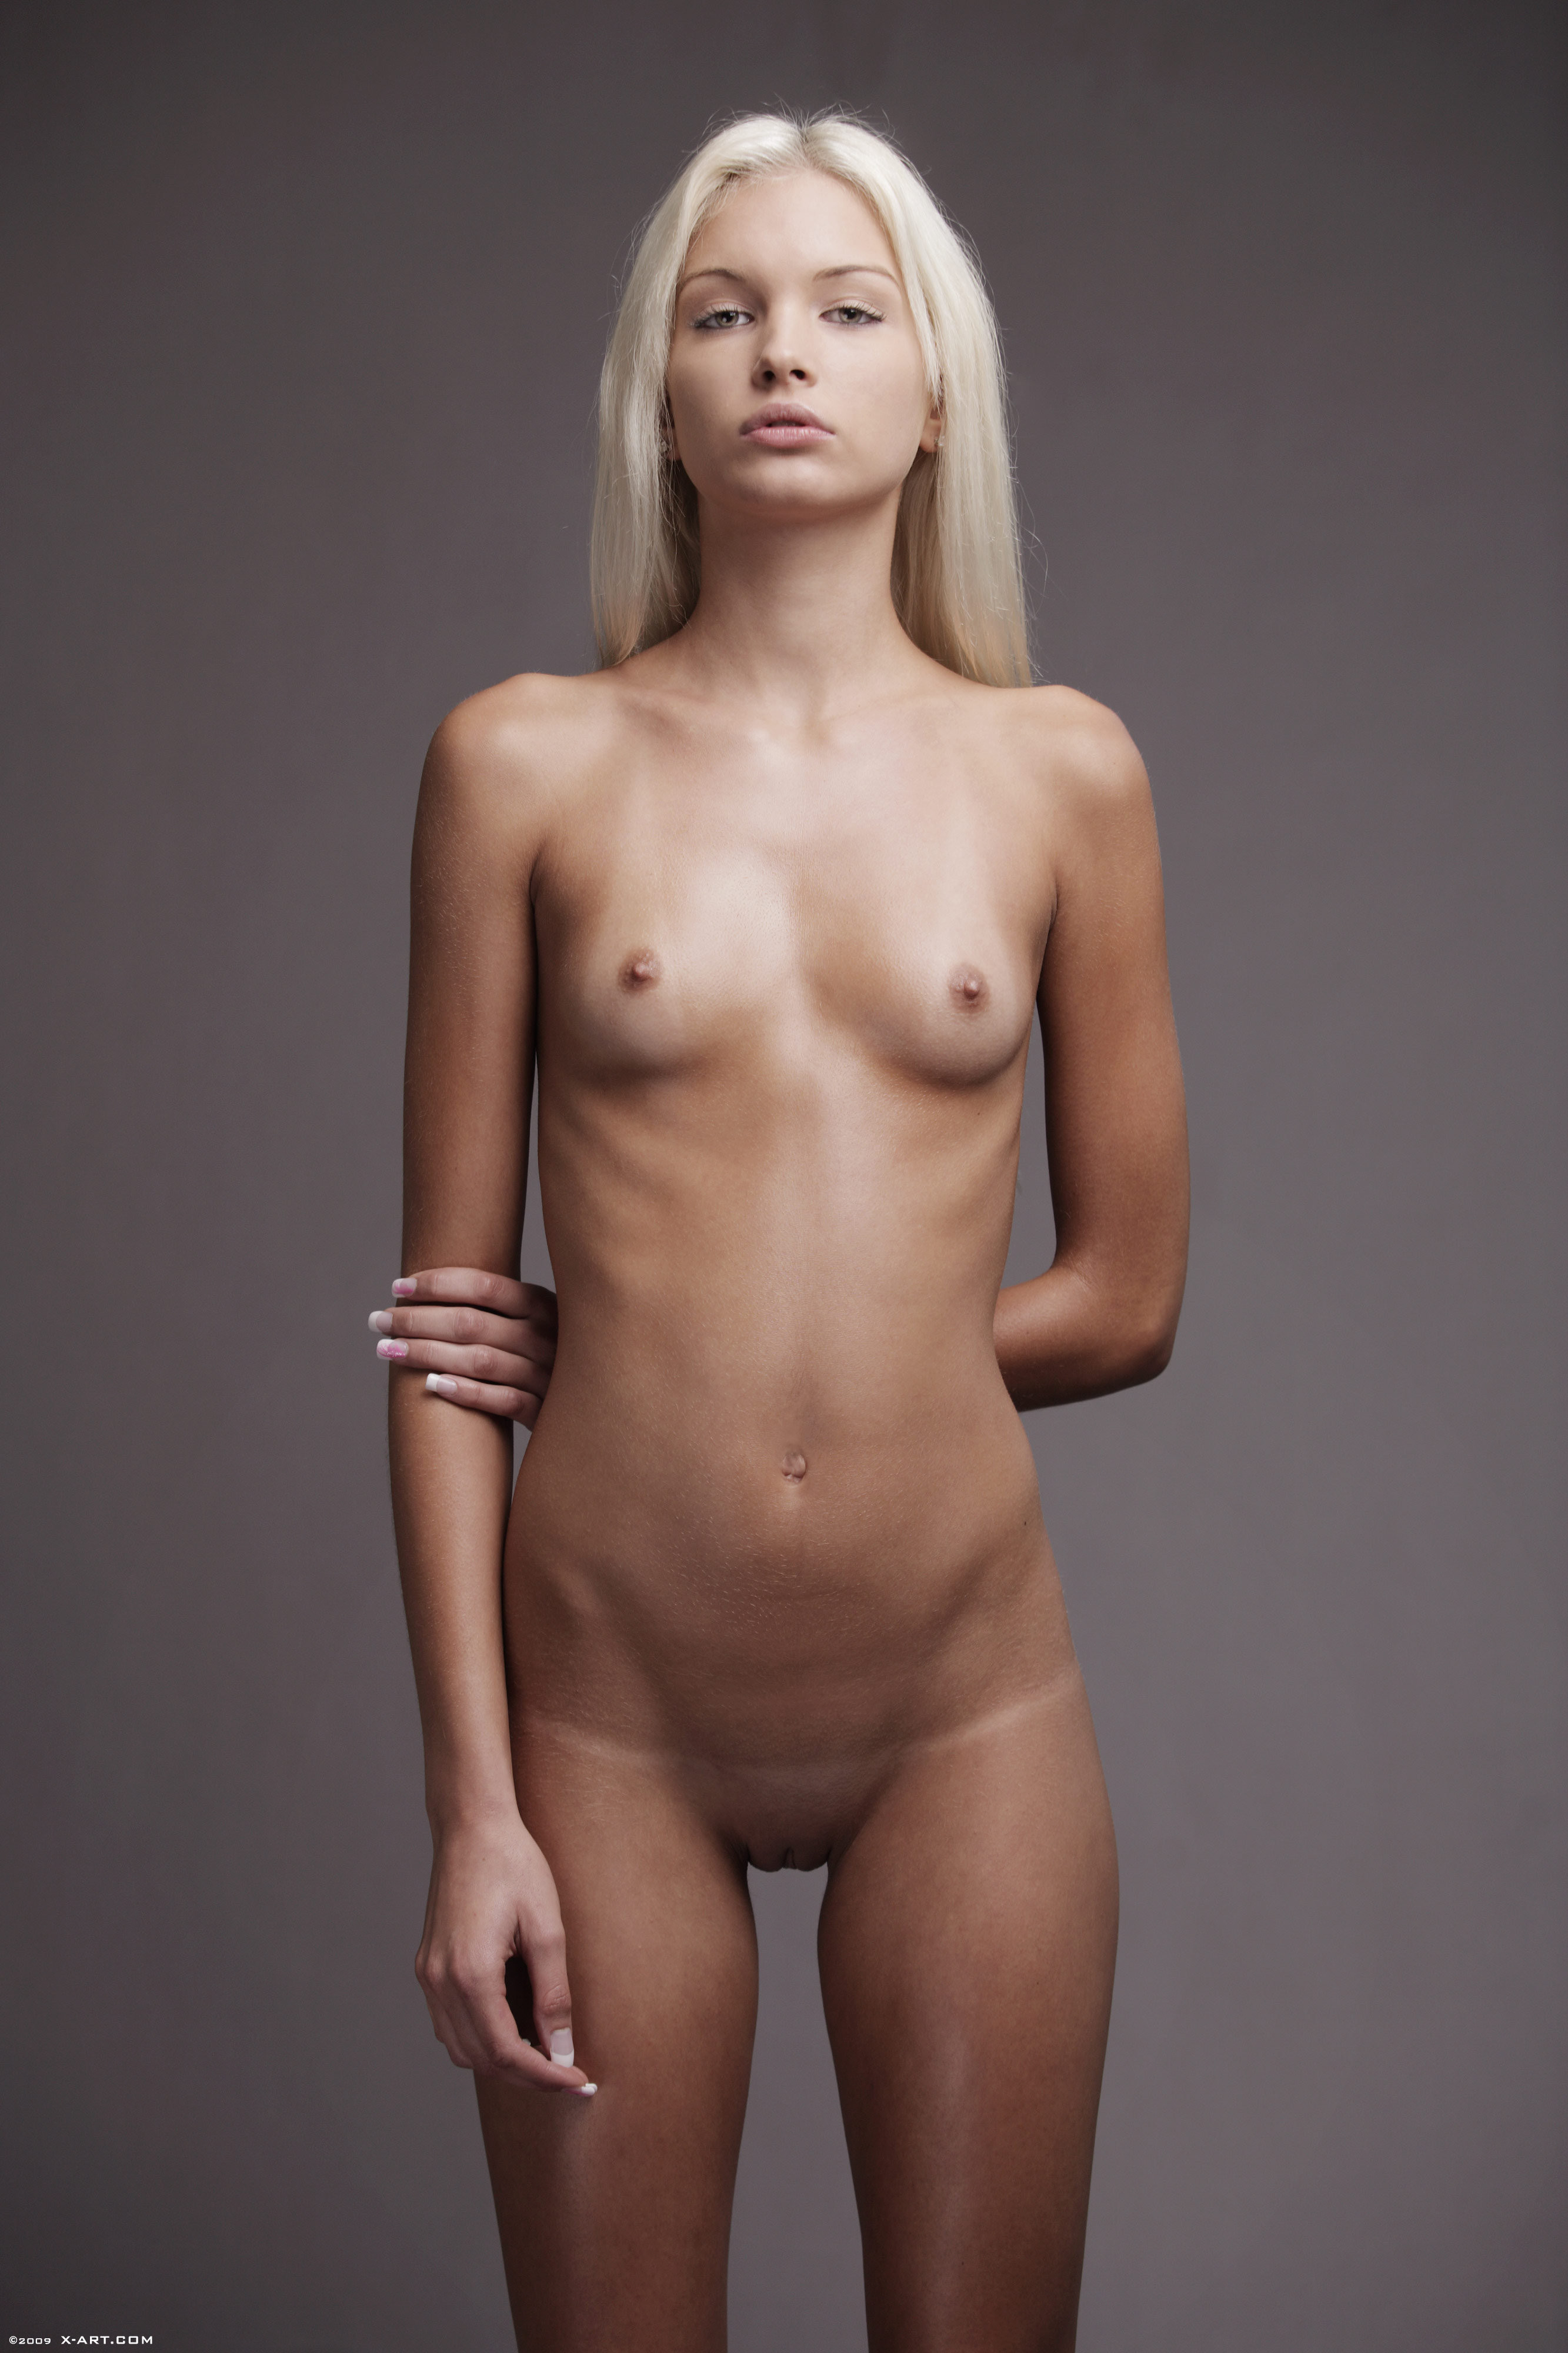 free sex chat and picture swapping sites